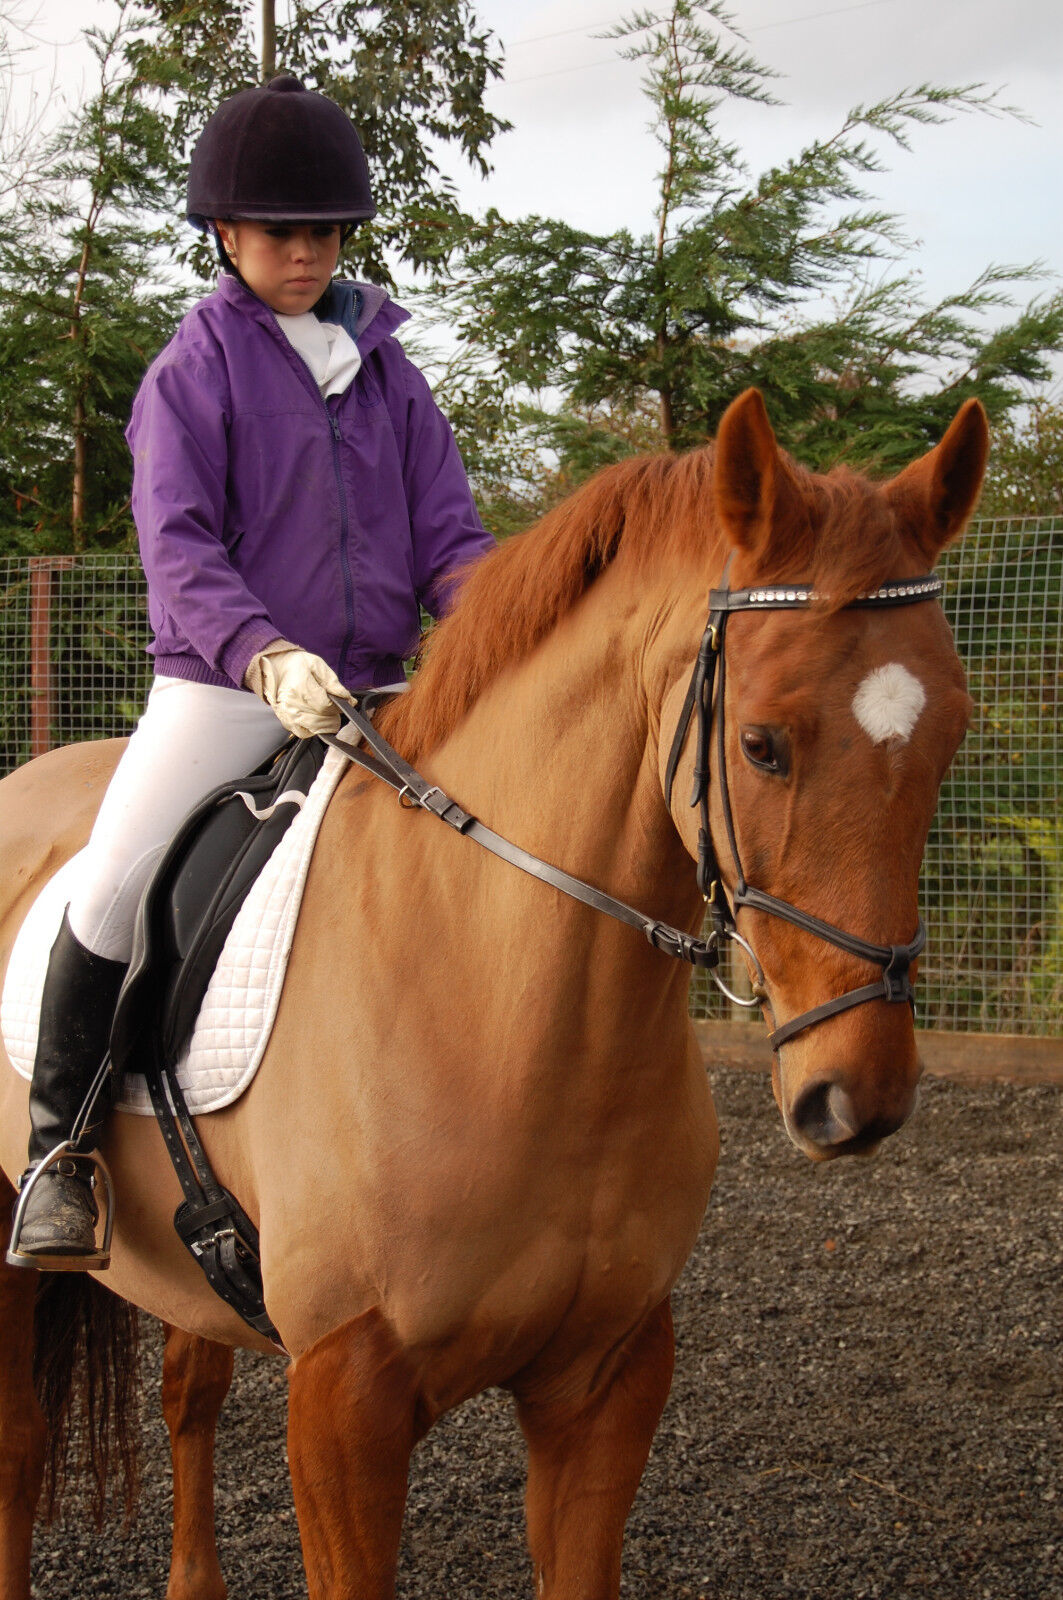 De Boiz Correct Contact Reins - Training Reins for Horse Rider. and Rider. Horse  Made in UK 494362